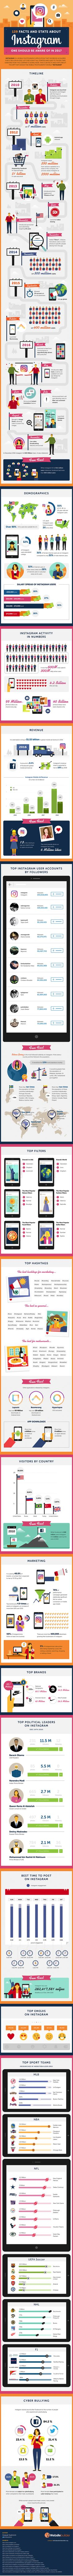 139 Fresh Instagram Facts: The Science of What Works [Infographic]